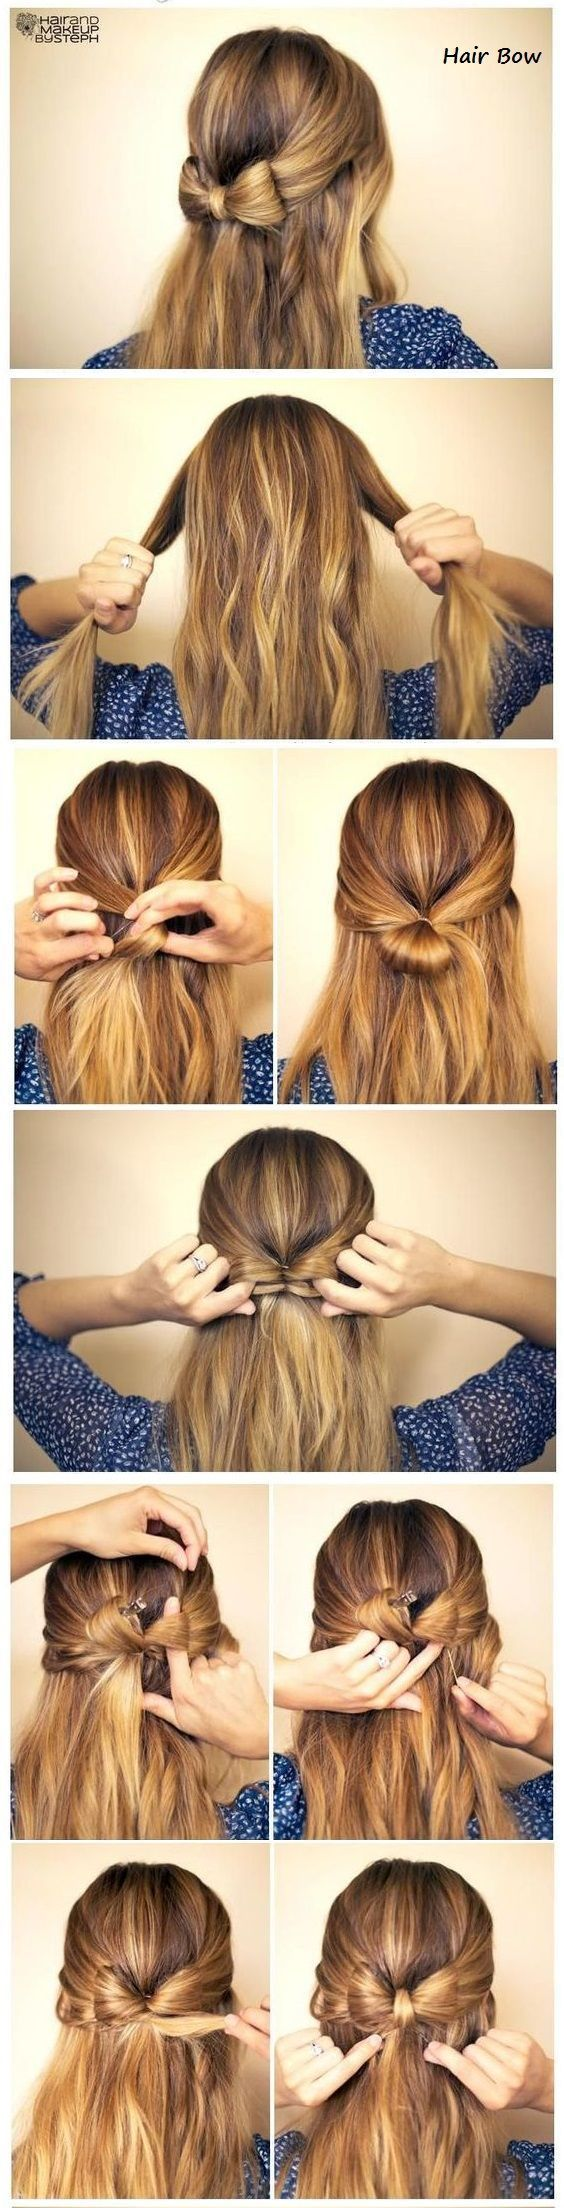 15 Easy Prom Hairstyles For Long Hair You Can Diy At Home Detailed Step By Step Tutorial Sun Kissed Violet Frisuren Haartutorial Lange Haare Madchen